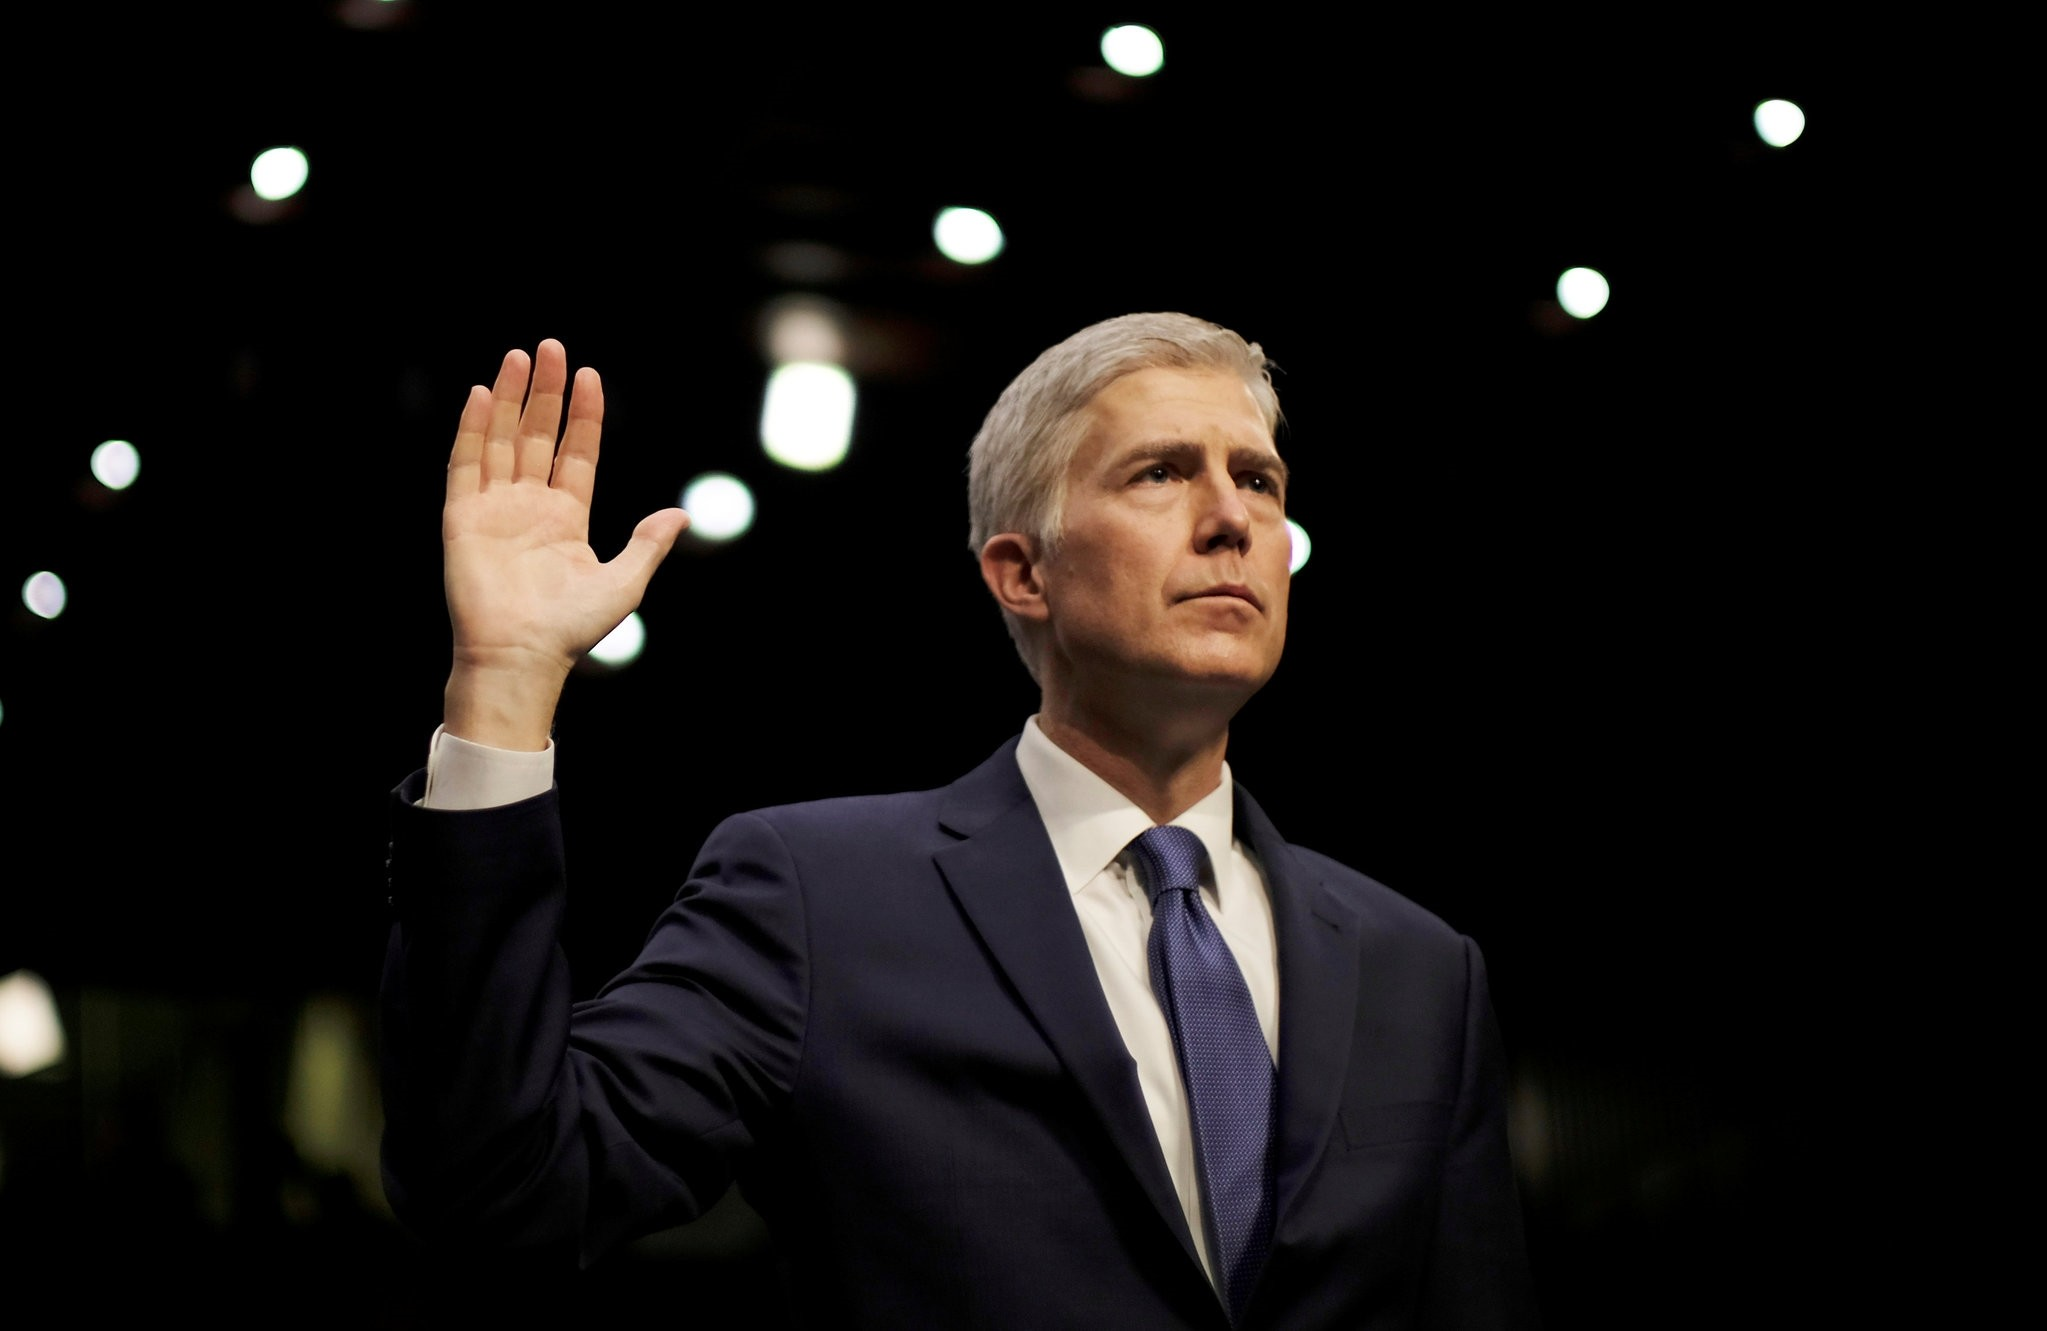 U.S. Supreme Court nominee judge Neil Gorsuch is sworn in to testify at his Senate Judiciary Committee confirmation hearing. (Reuters Photo)